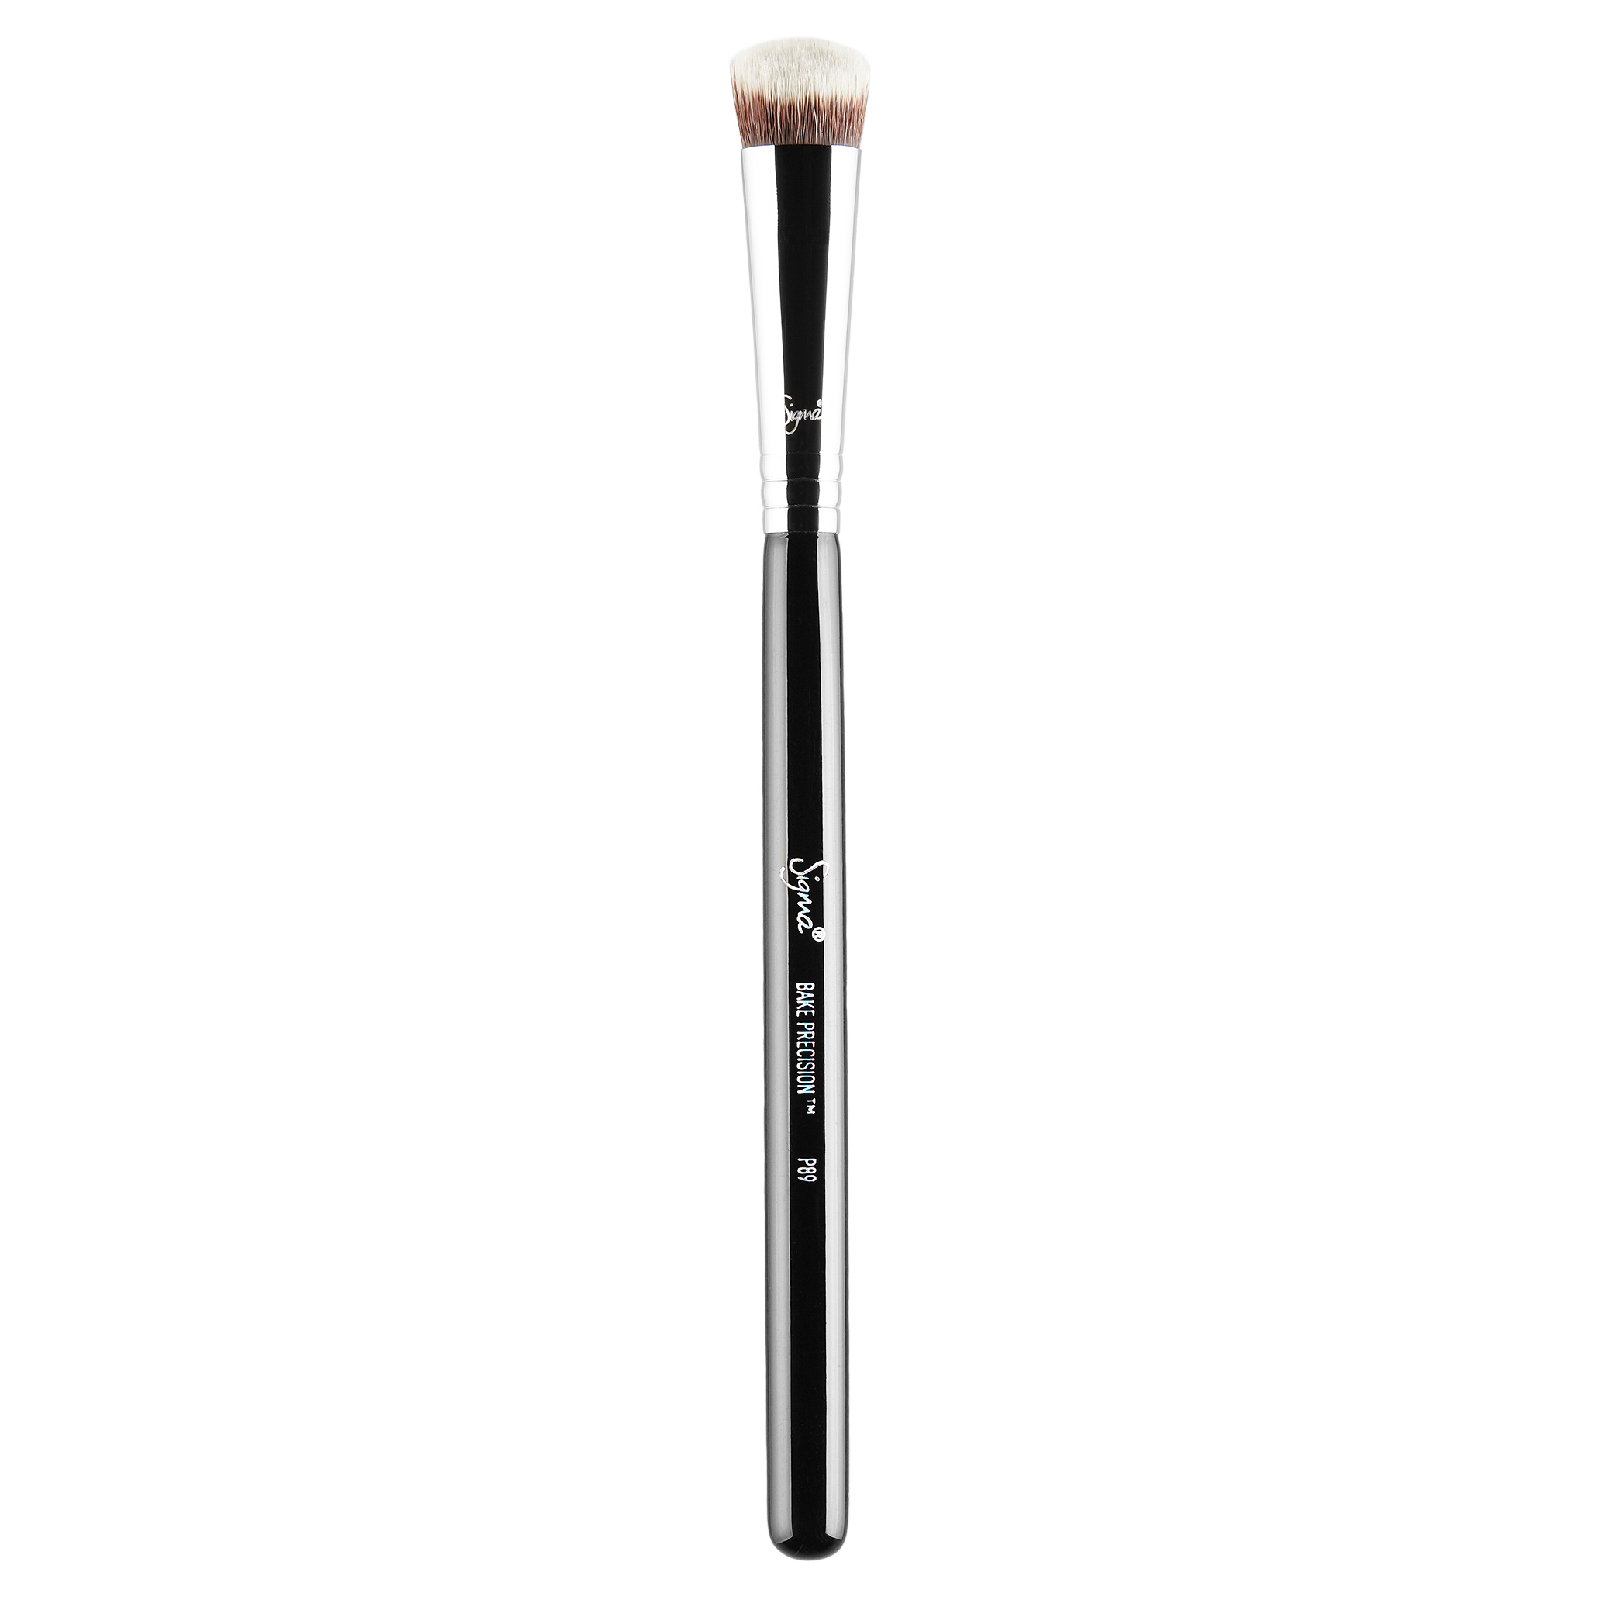 Sigma P89 Bake Precision Brush™